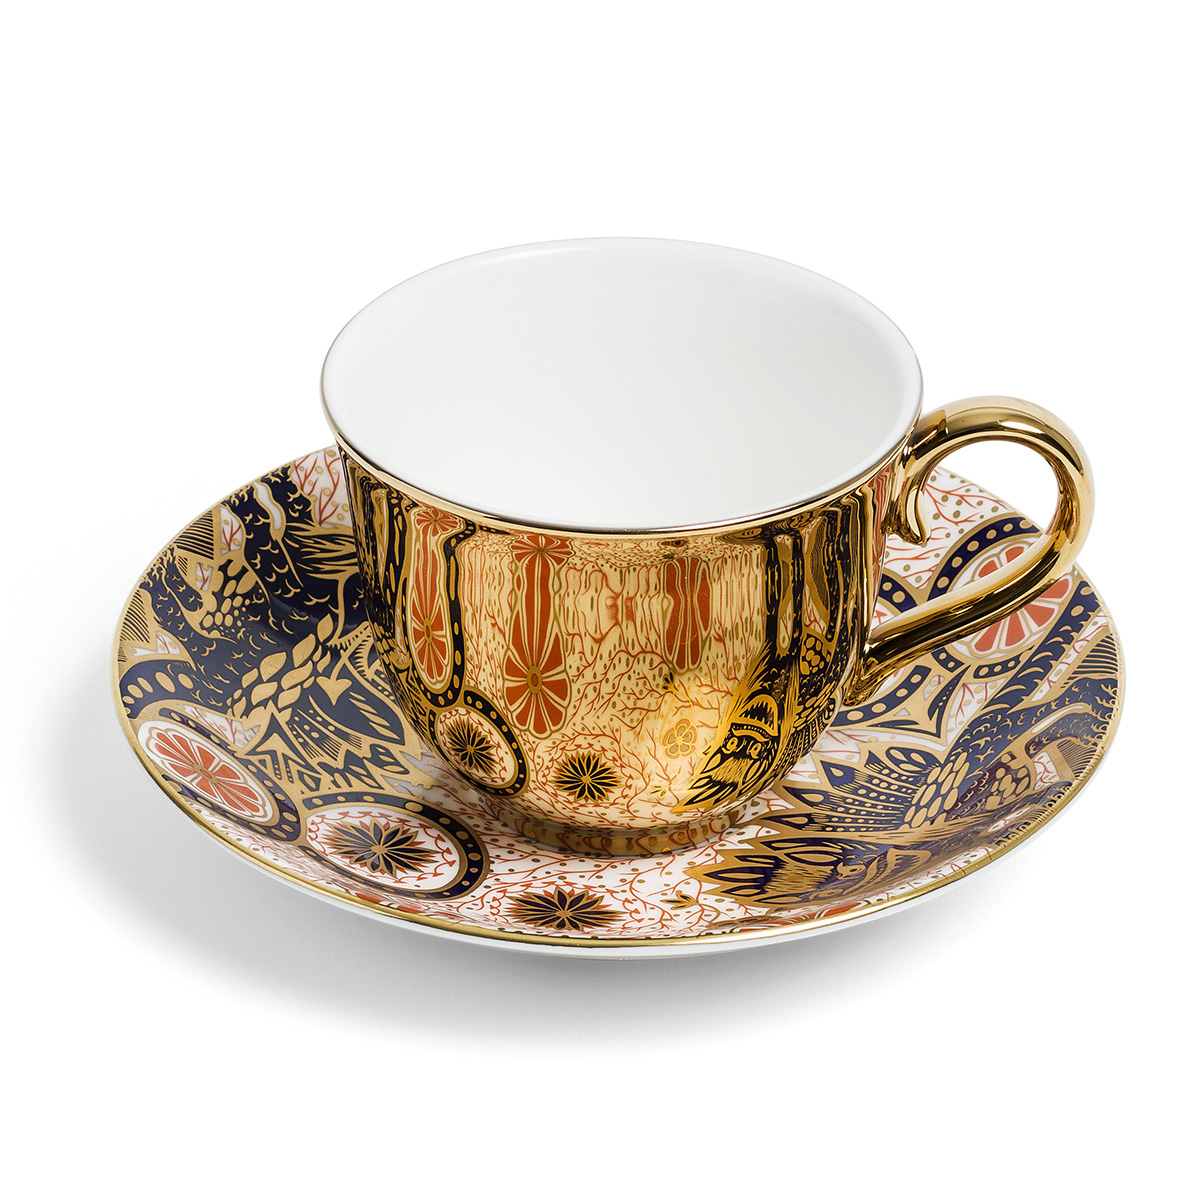 Mythical Beasts cup and saucer by Richard Brendon